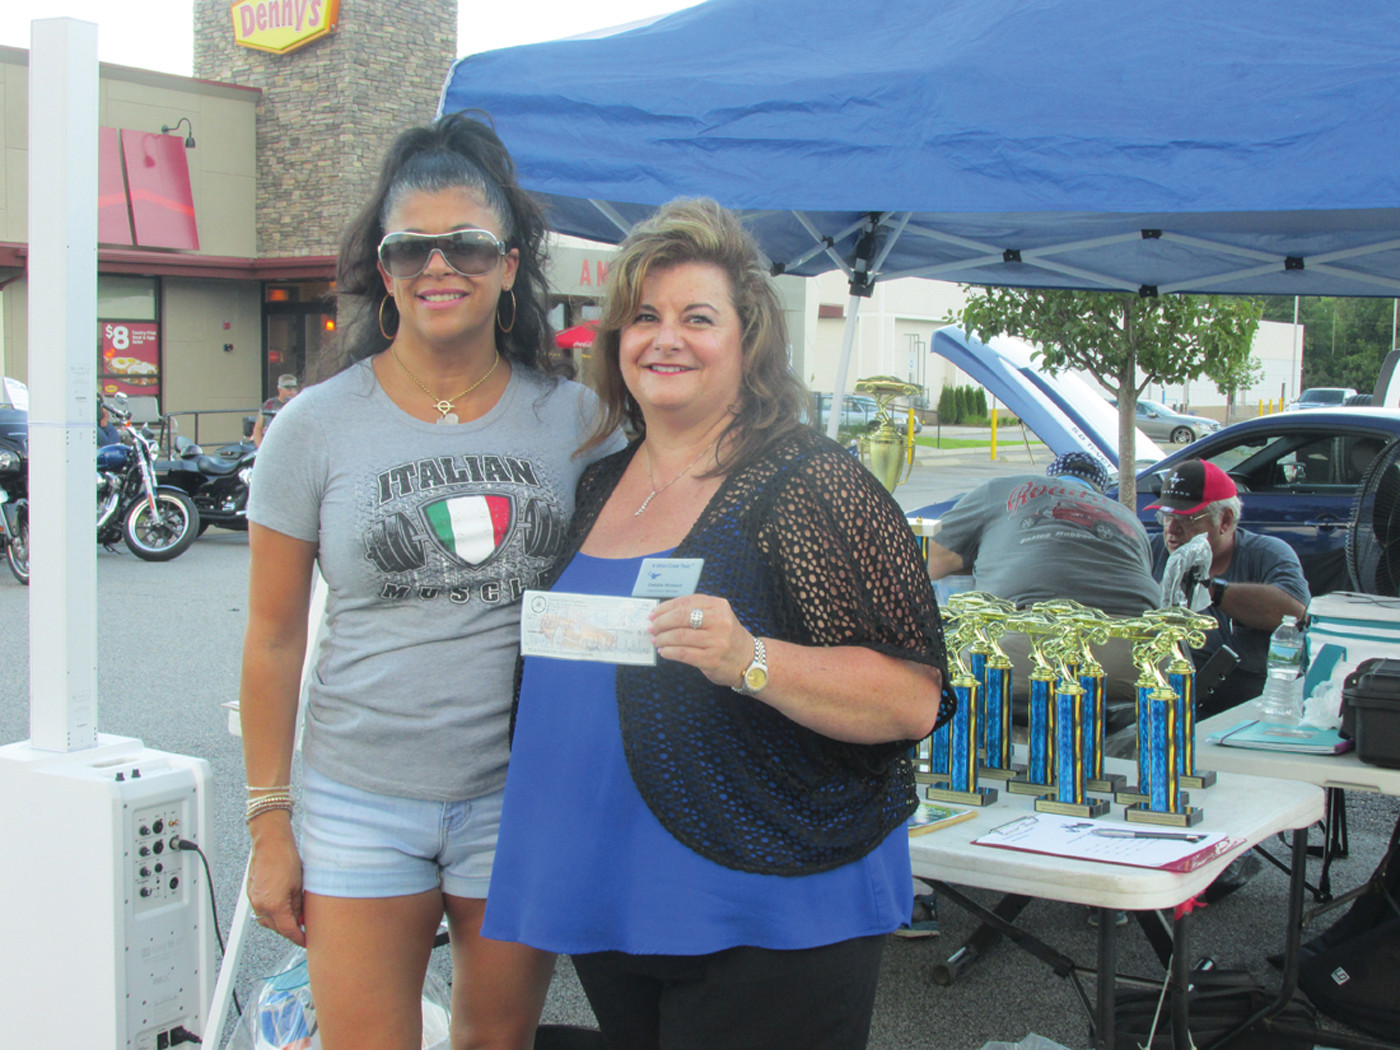 GENEROUS GIFT: Gina Sabitoni-Arakelian (left), treasurer and co-found of the Johnston Street Machines, gives A Wish Come True Operations Manager Debbie Richard a check.